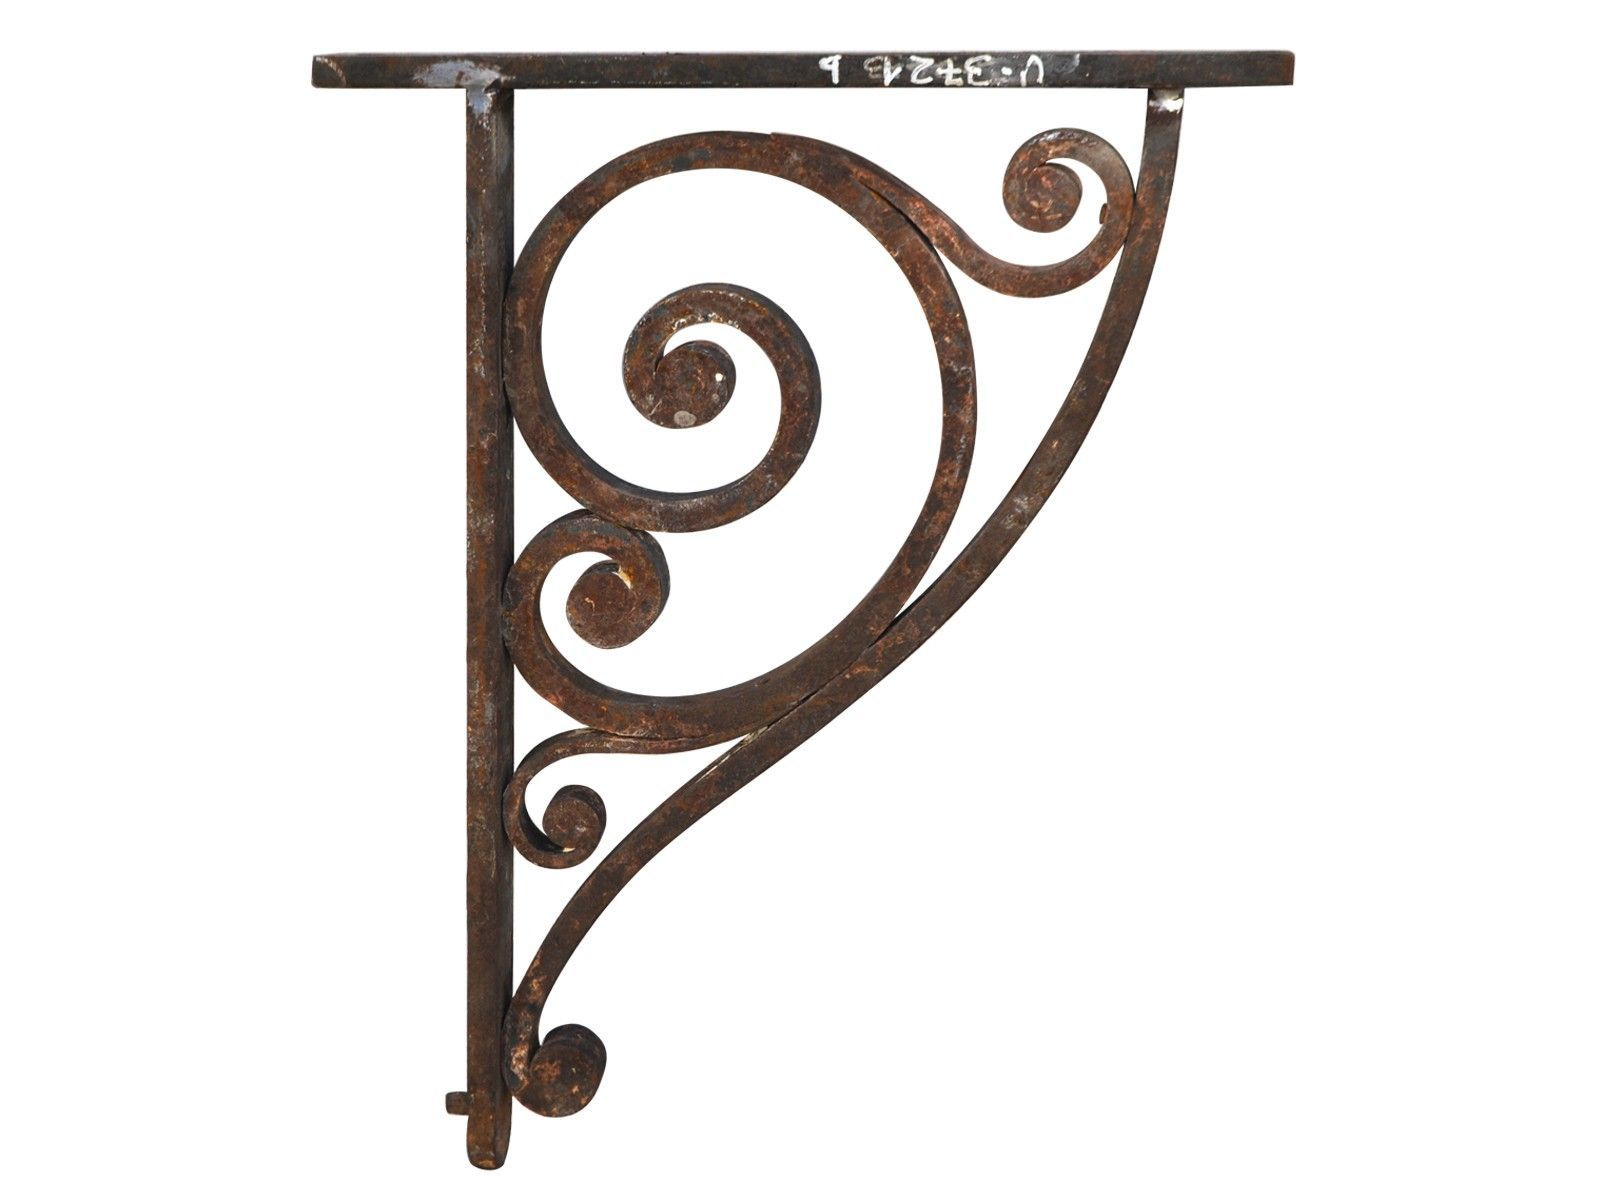 Primitive Rustic Scroll Style Hand Forged Wrought Iron Shelf ...